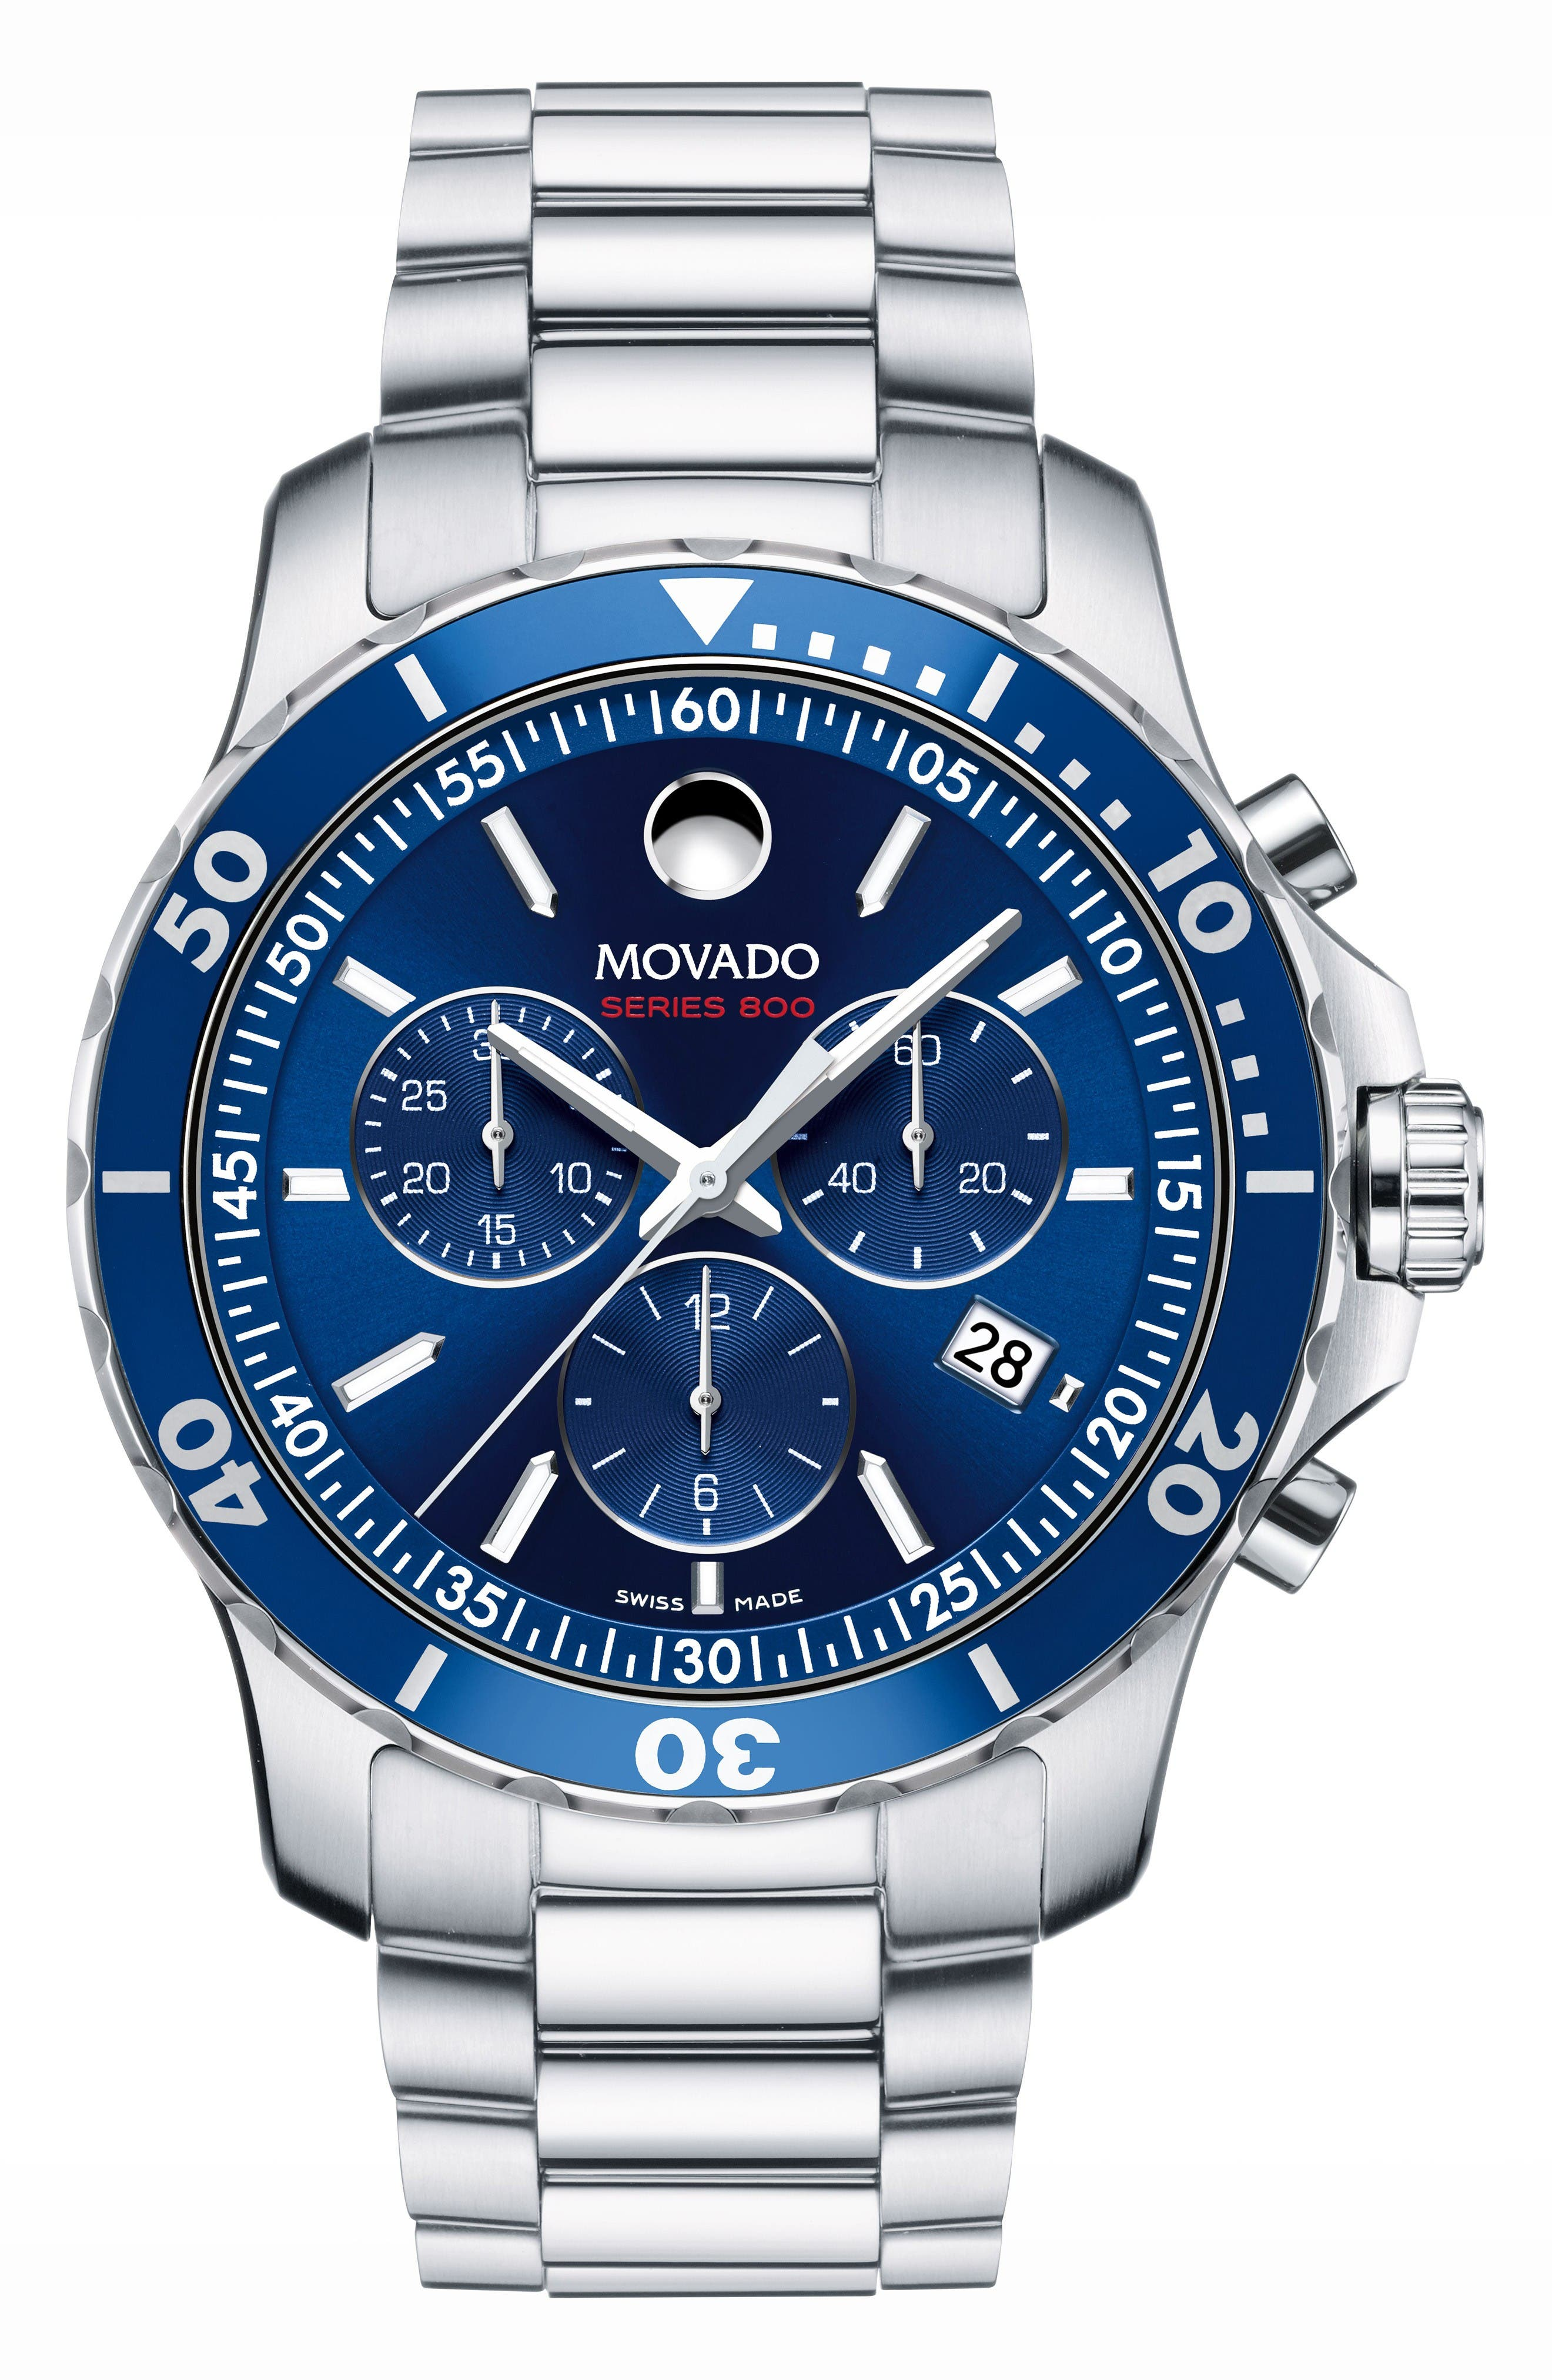 Main Image - Movado 'Series 800' Chronograph Bracelet Watch, 42mm